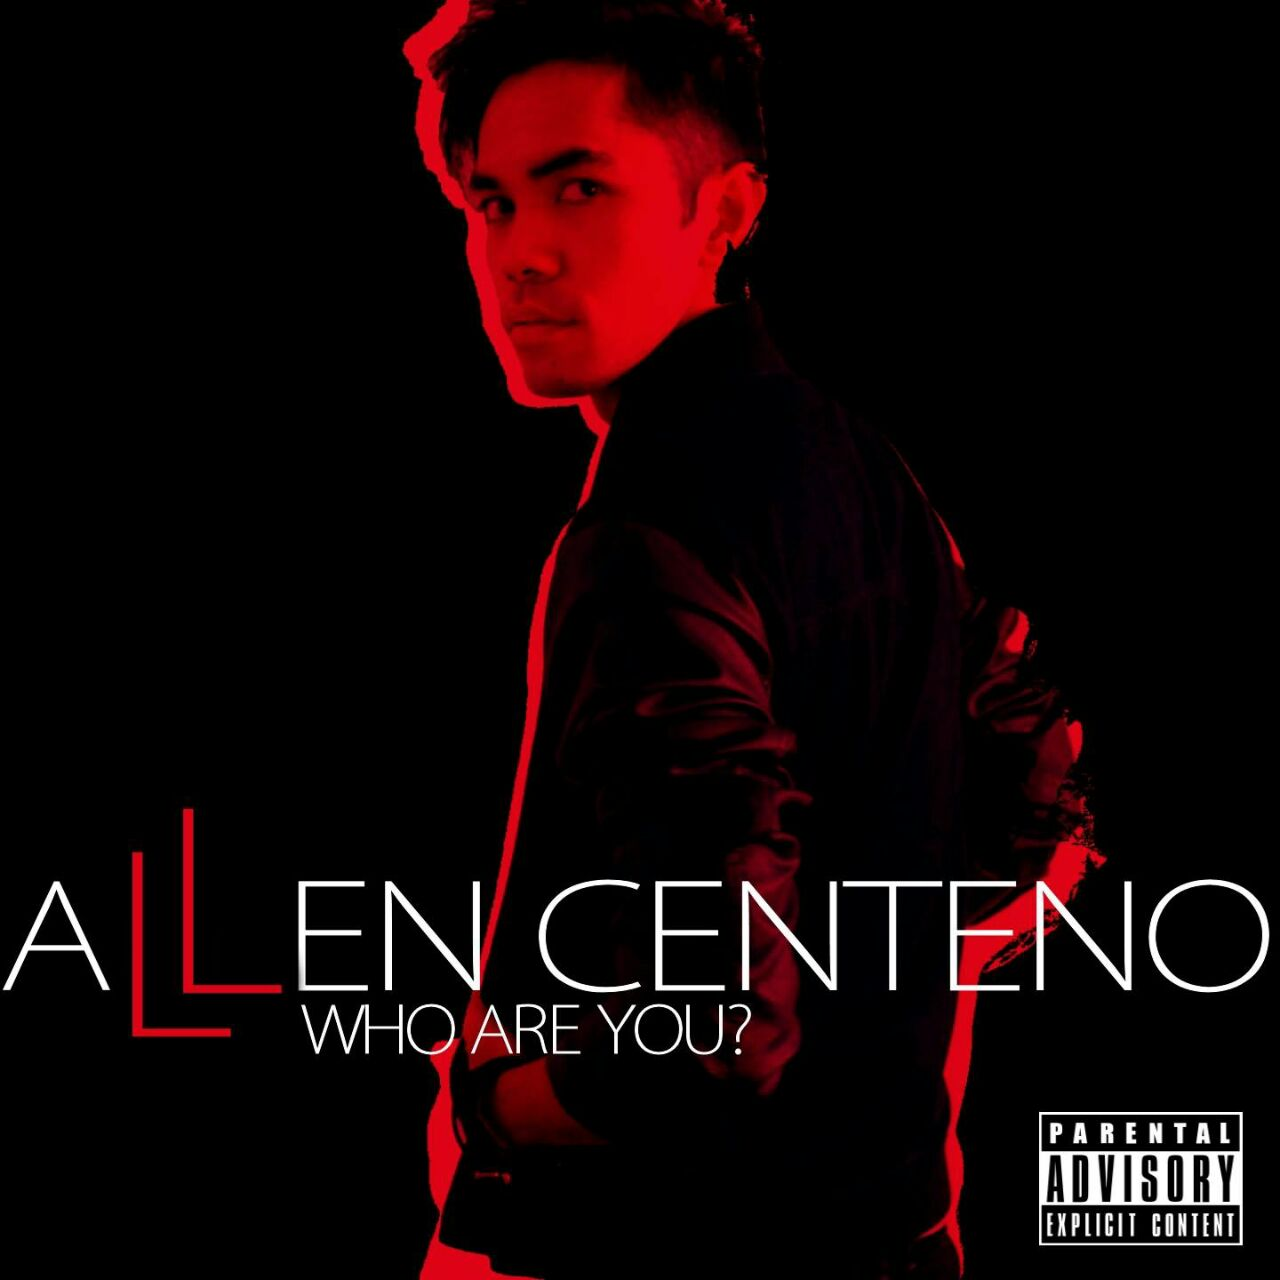 Allen Centeno - Who Are You?